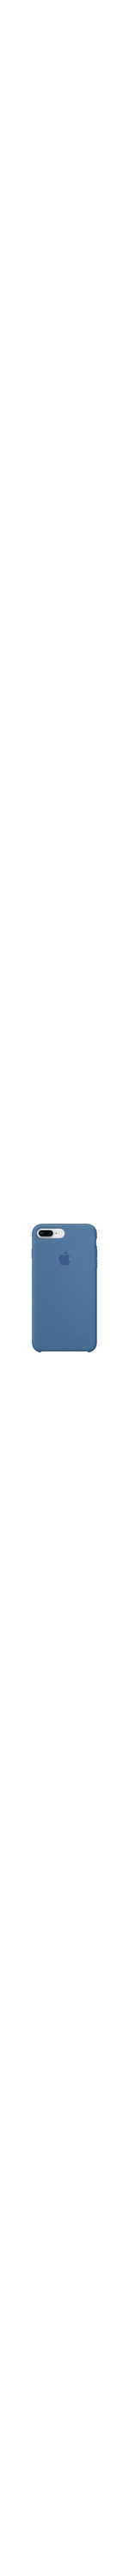 Apple Case for Apple iPhone 7 Plus, iPhone 8 Plus Smartphone - Blue Denim